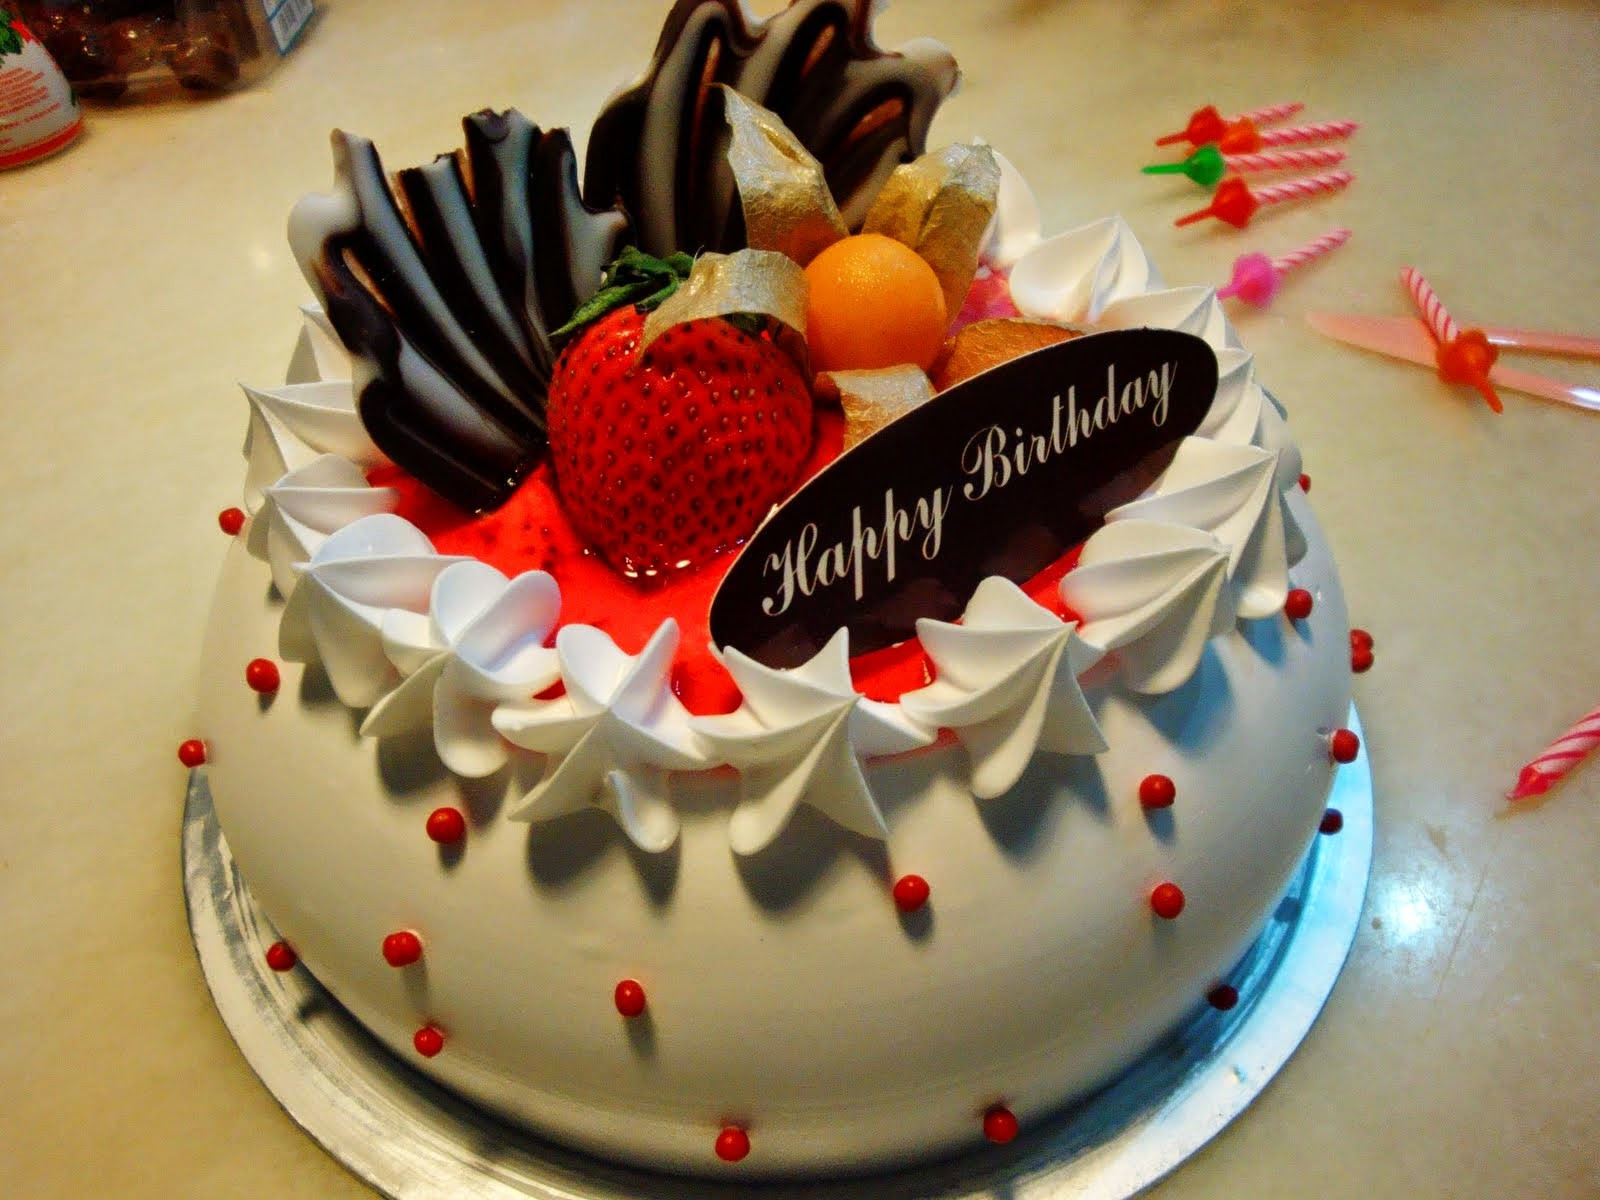 Best ideas about Cake Happy Birthday . Save or Pin HD BIRTHDAY WALLPAPER Birthday cakes Now.